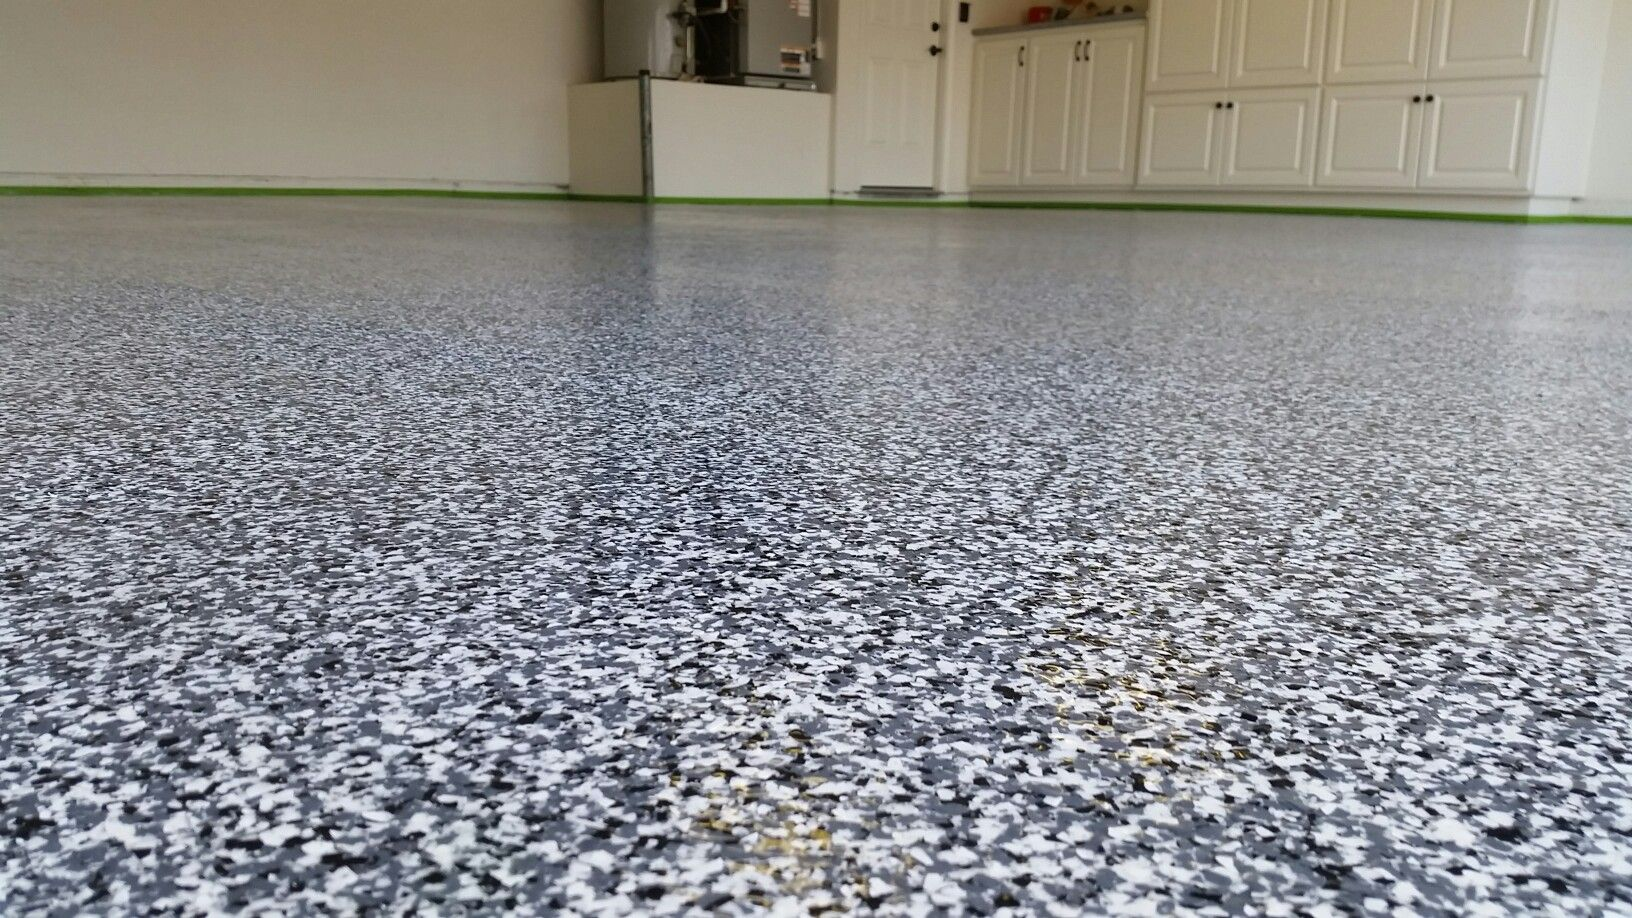 Garage Floor Paint Chips Full Broadcast Of Paint Chip Epoxy Garagefloor Epoxy Coatings